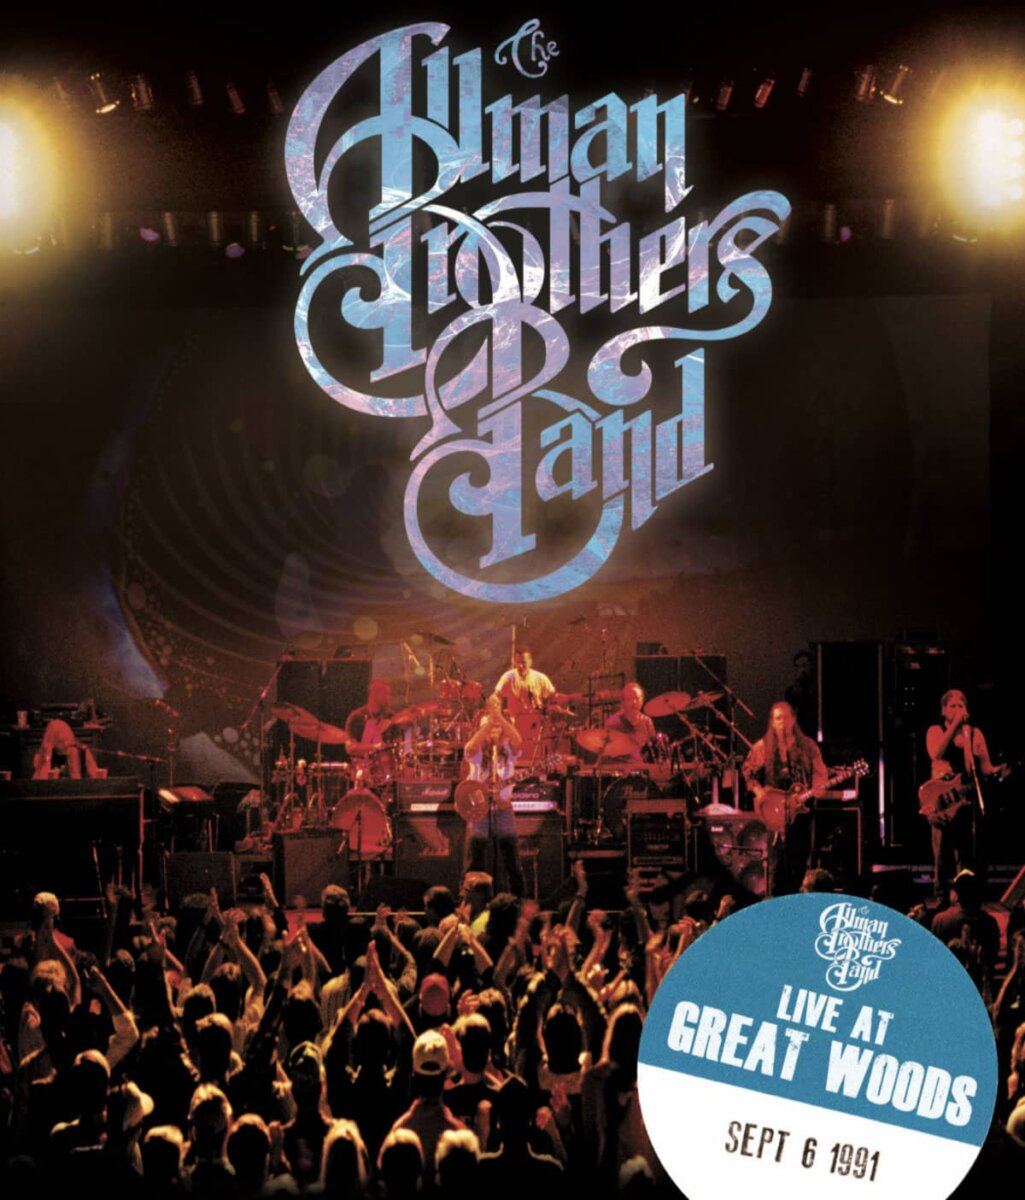 The Allman Brothers Band: Live At Great Woods 1991 DVD